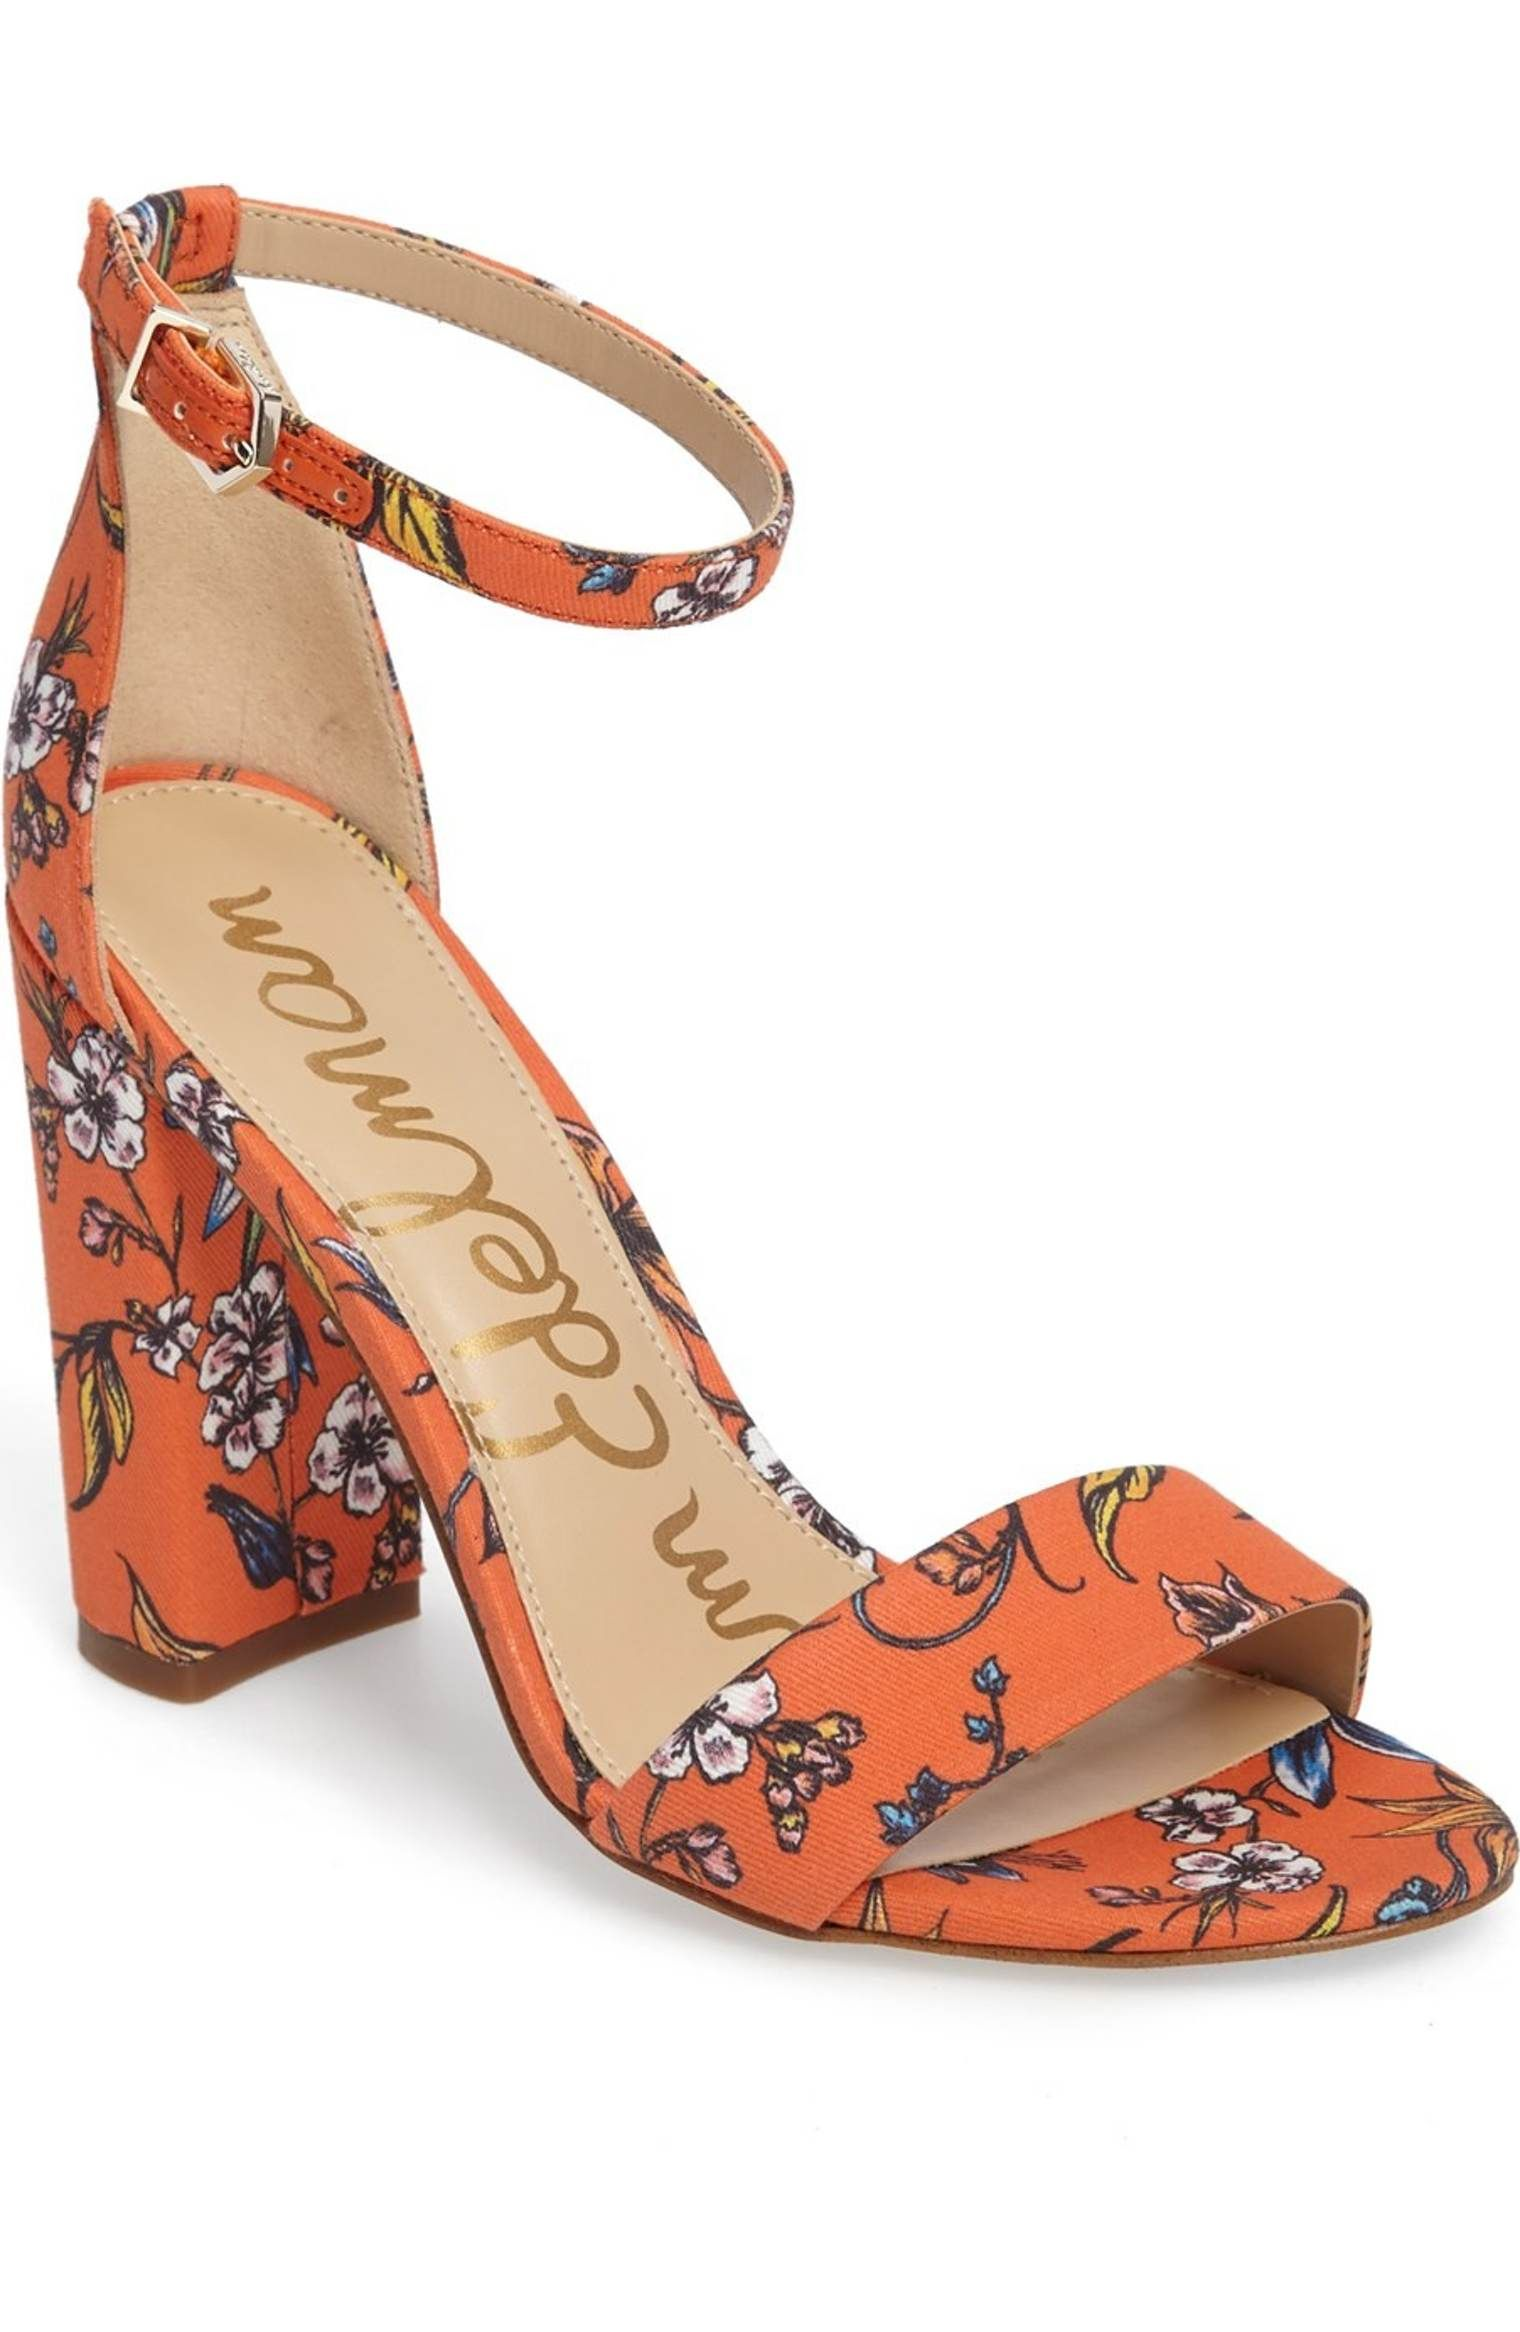 b941bdd48ab2 Main Image - Sam Edelman Yaro Ankle Strap Sandal (Women) orange chunky heel  with print boho